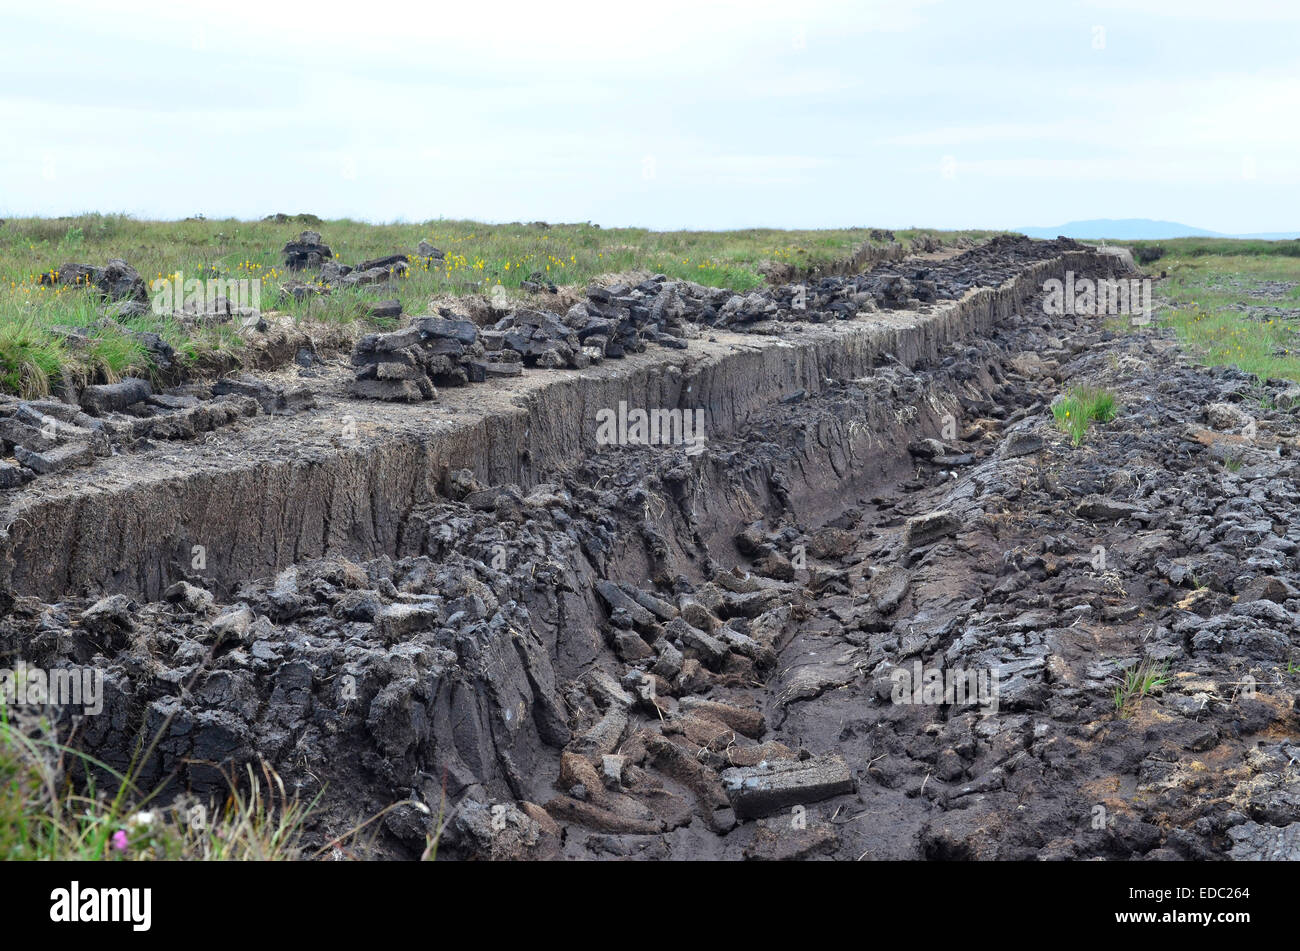 A field of peat that is used in the process of making Laphroaig Whisky, Islay, Scotland - Stock Image